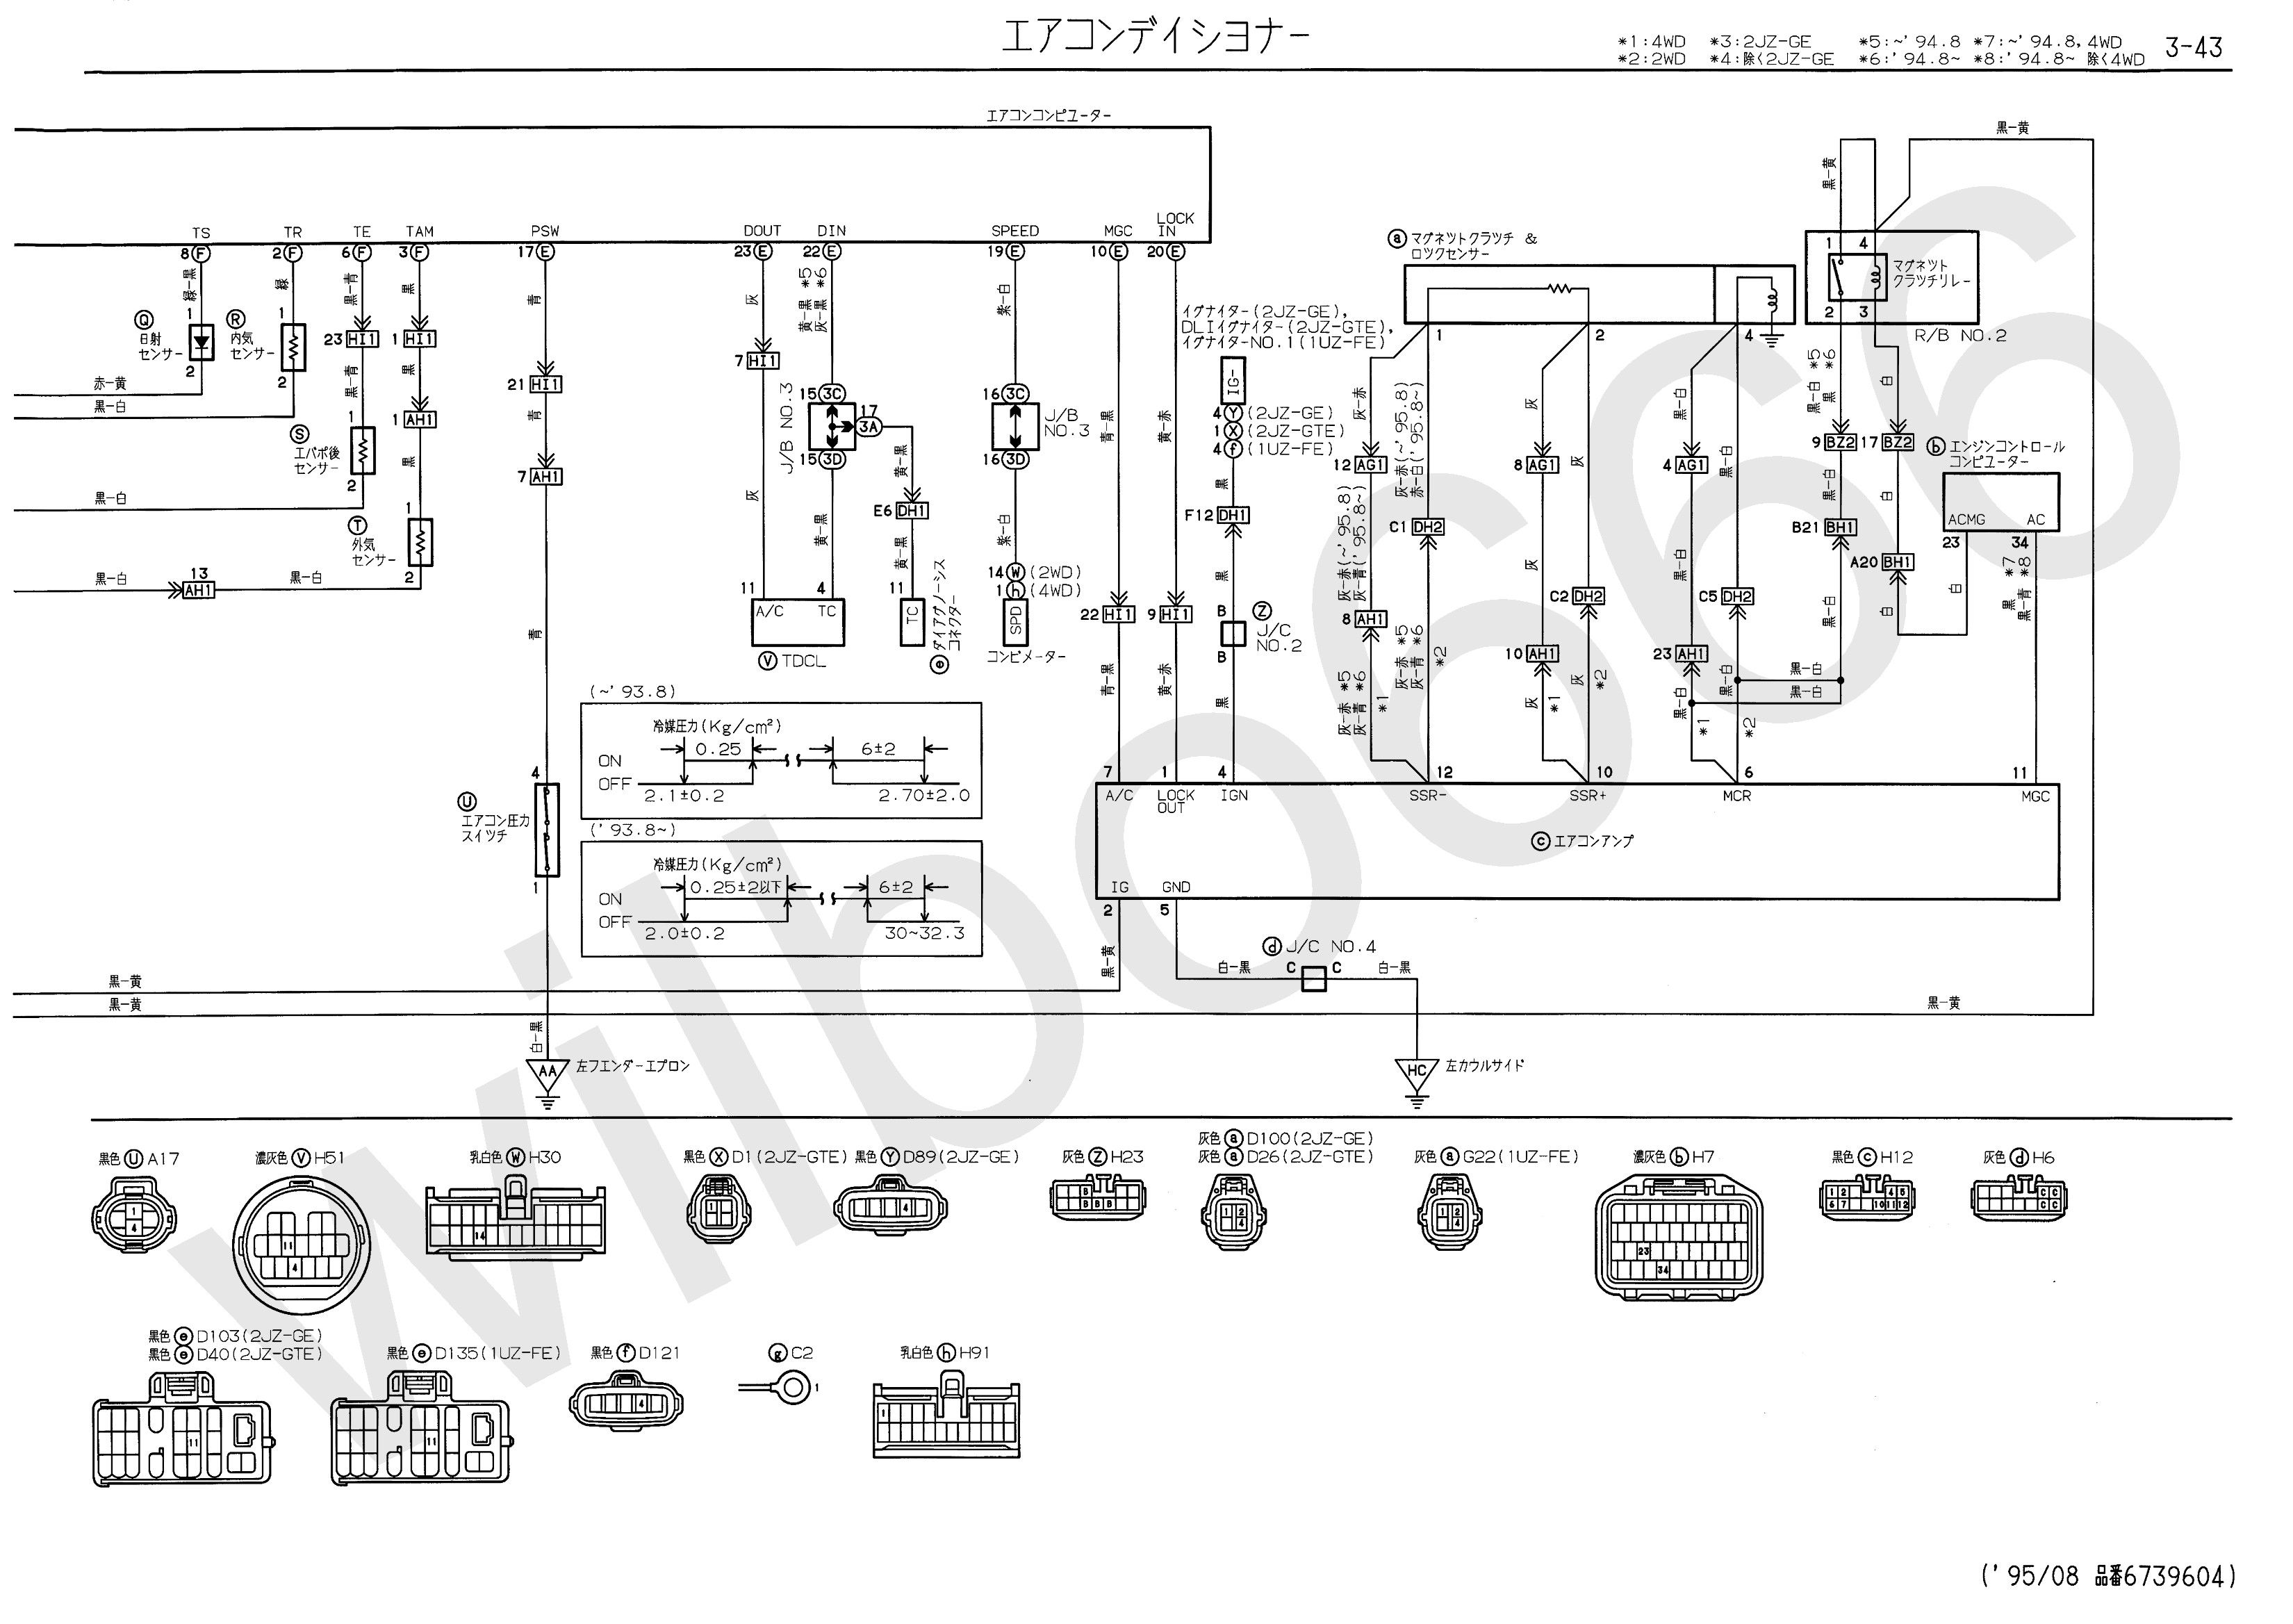 S1 Switch Wiring Diagram in 2021 | Repair guide, Map sensor, Diagram | Ge Sensor Wiring Diagram |  | Pinterest